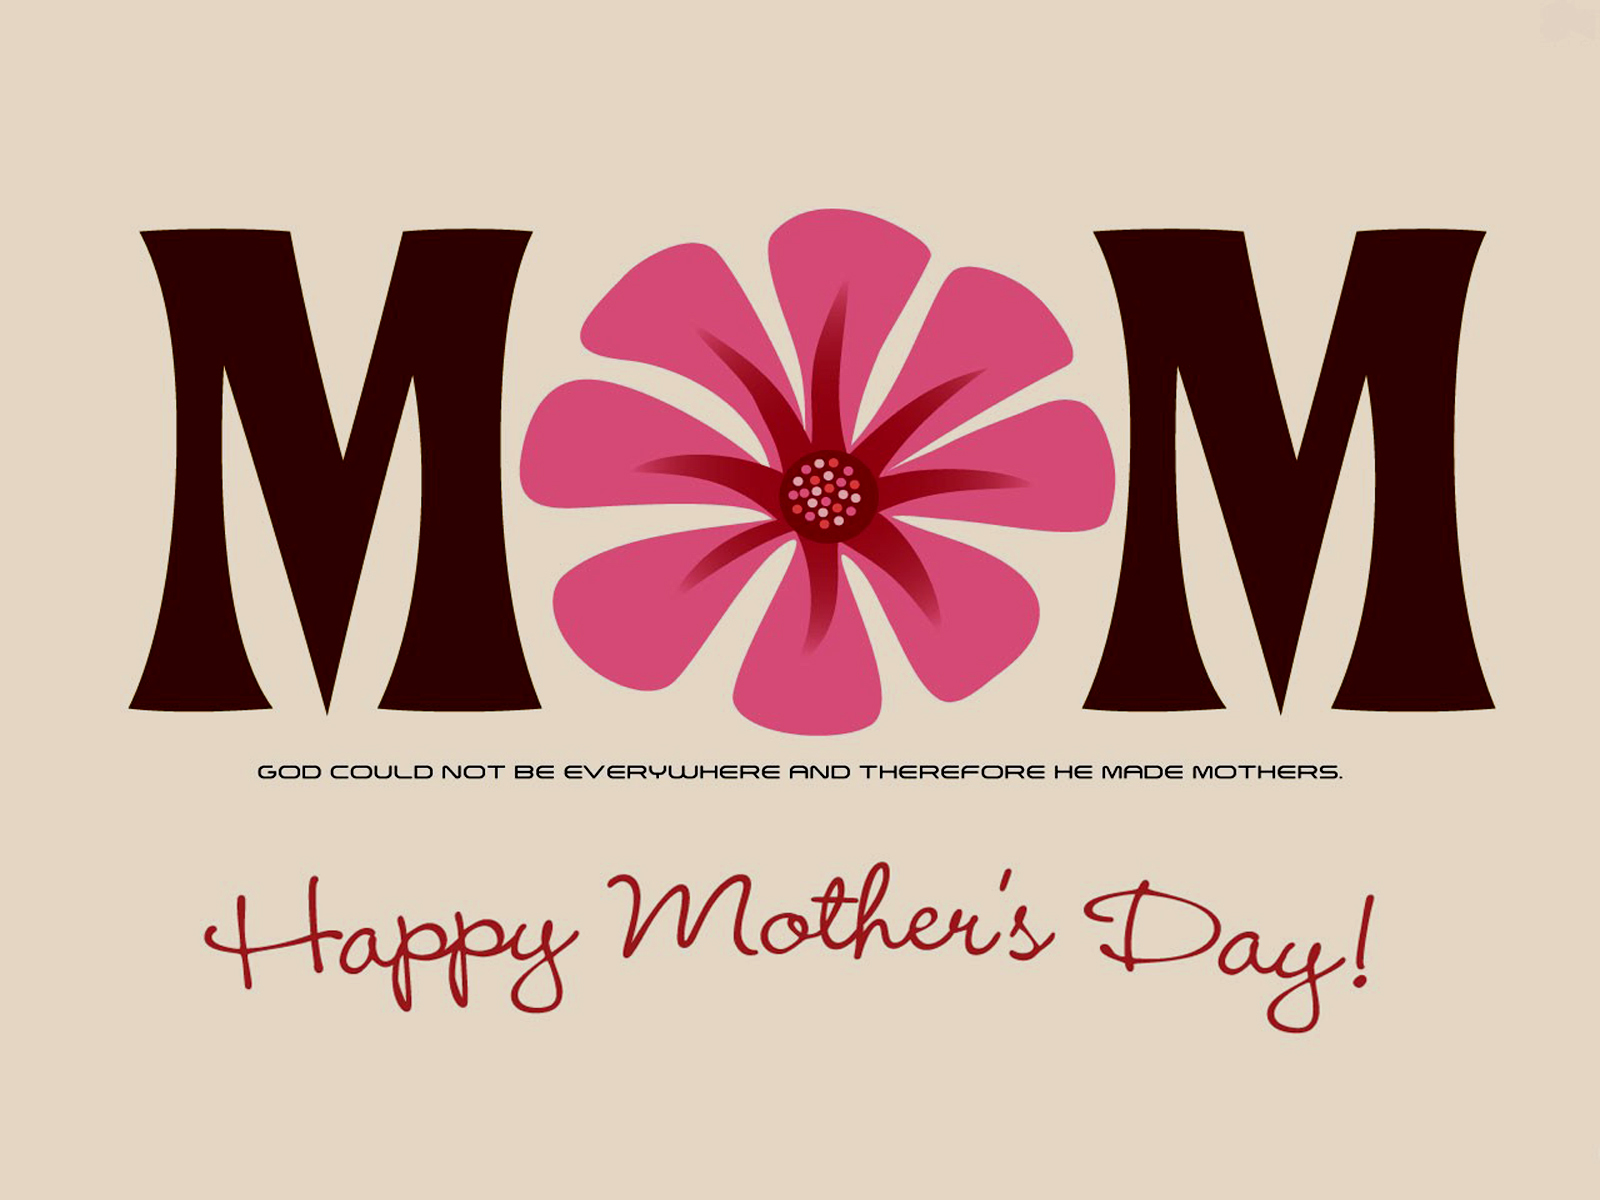 Mother's Day 2016 images for facebook - Mothers day 2016